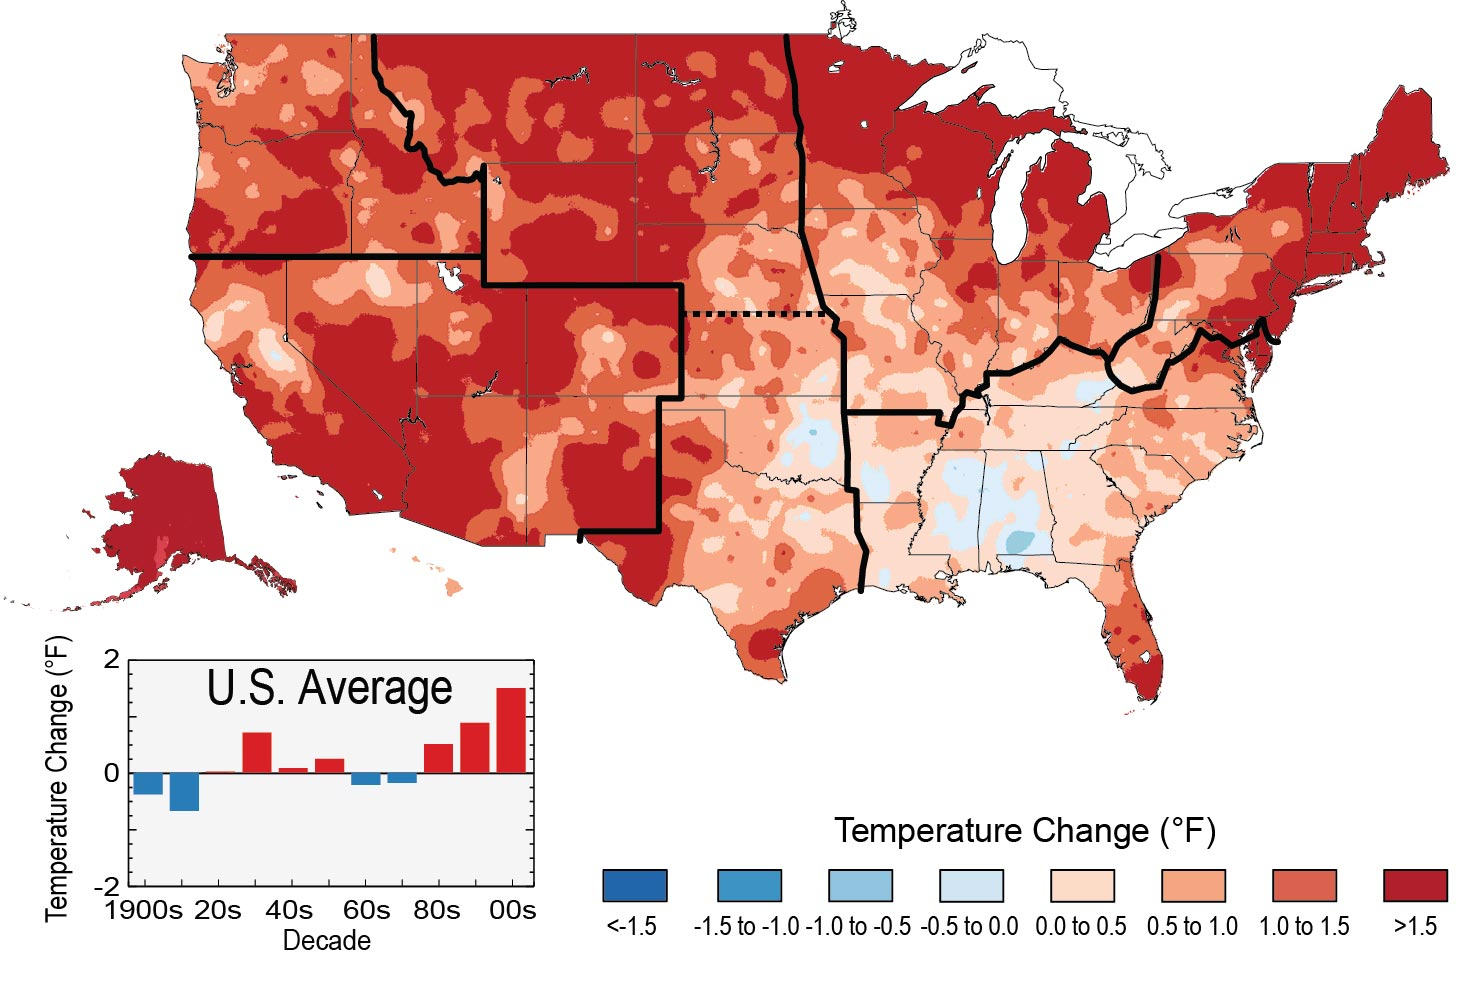 National Climate Assessment 15 Arresting Images Of